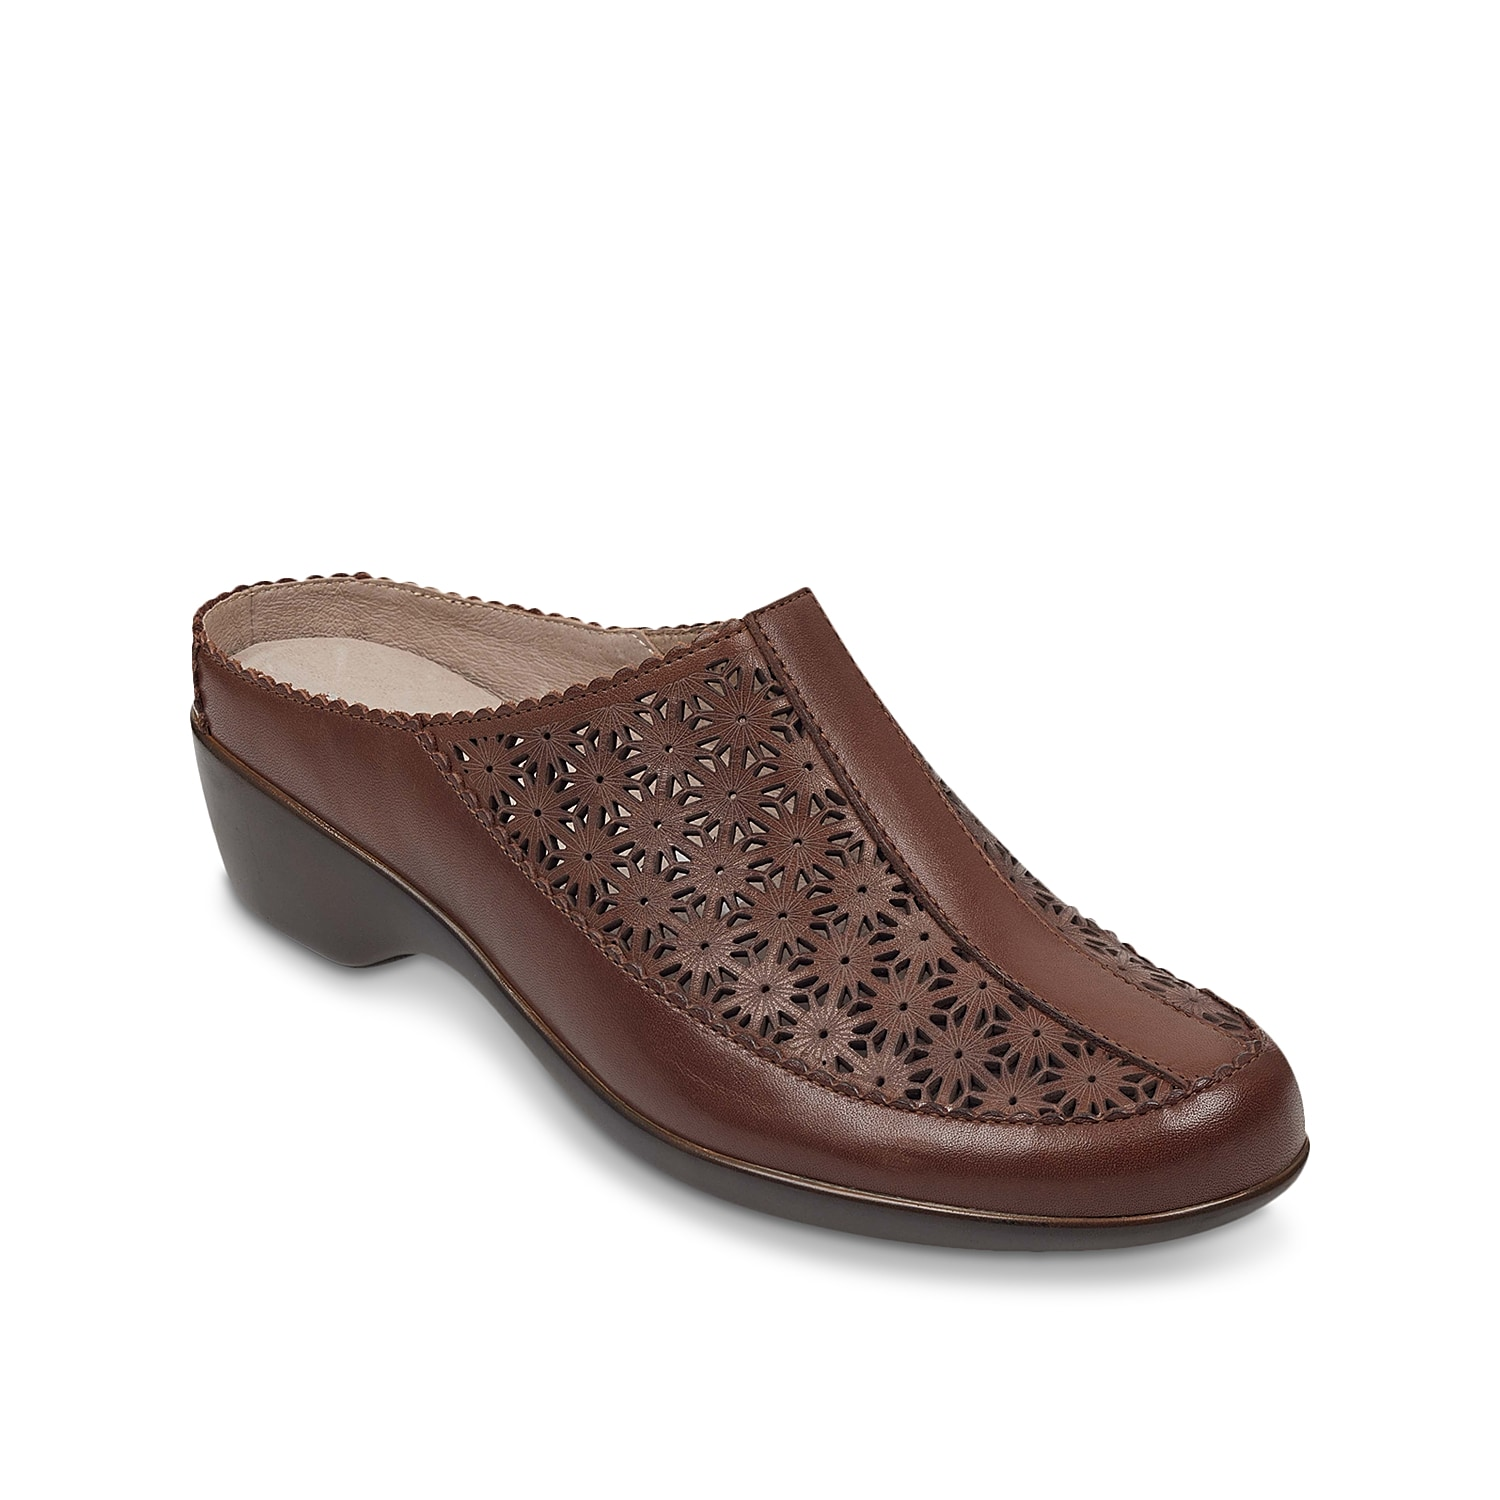 Showcase your free-spirited side in the Dusk mule from Easy Spirit. These slip-on clogs feature nature-inspired laser-cut detailing and a padded footbed for long-lasting comfort.